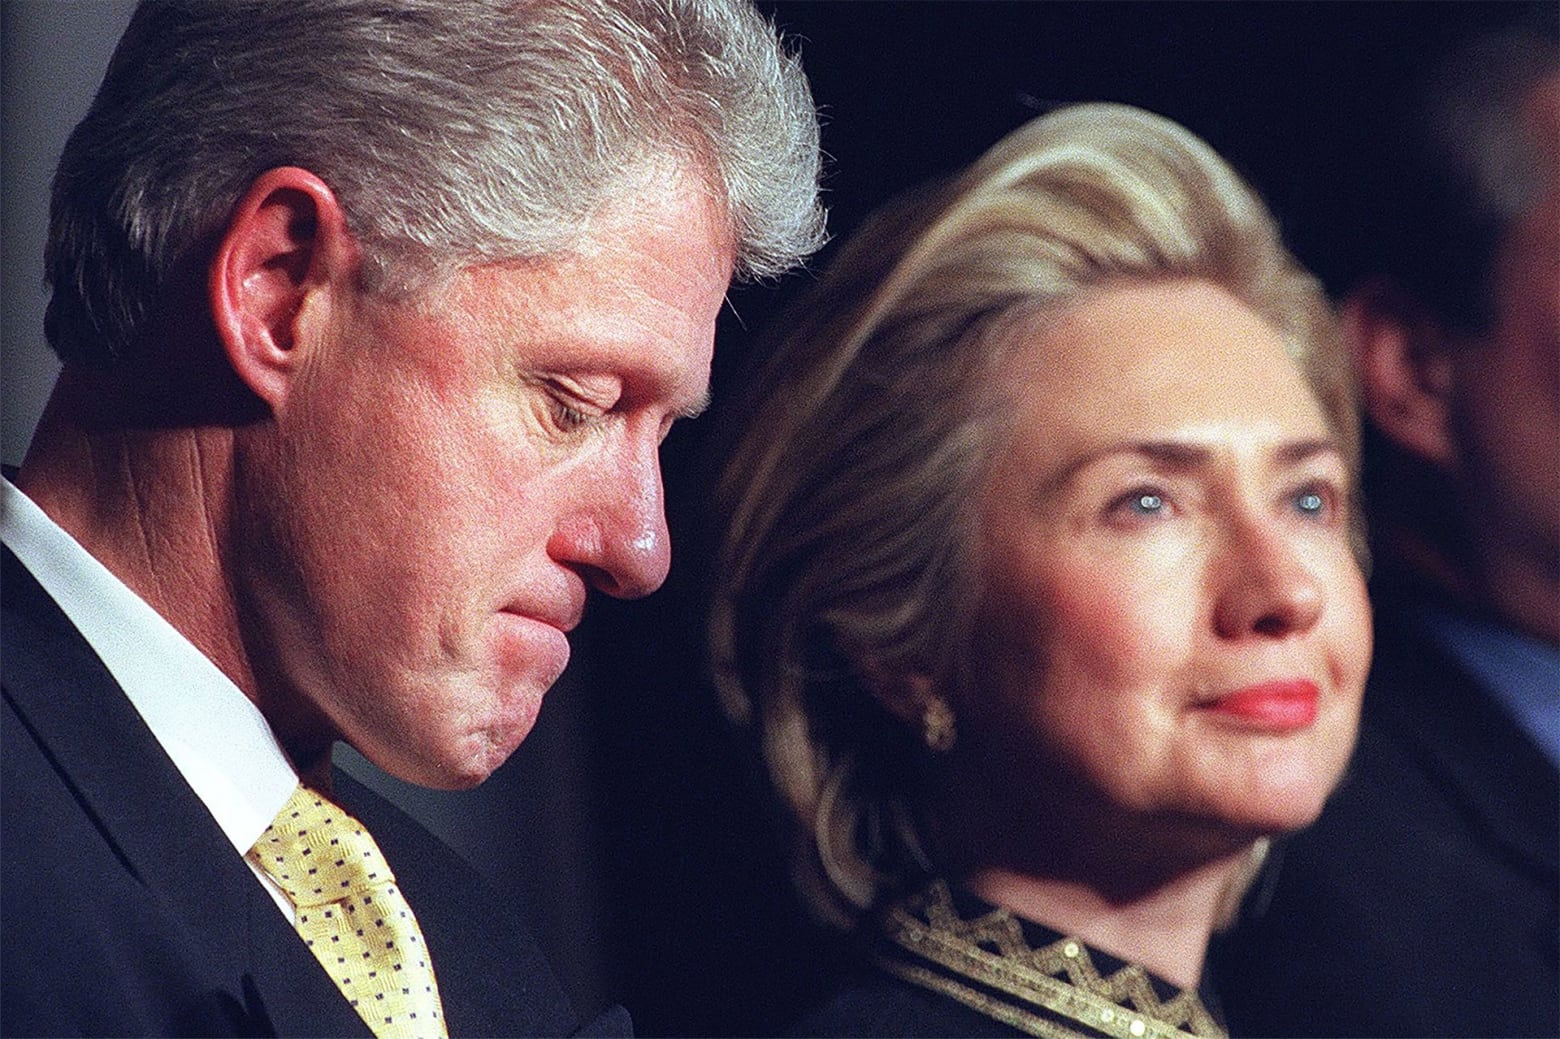 the bill clinton scandal Gennifer flowersgate - bill clinton denied a 12 year affair with gennifer flowers she taped phone calls with him but he claimed they were false and branded her a liar she taped phone calls with him but he claimed they were false and branded her a liar.